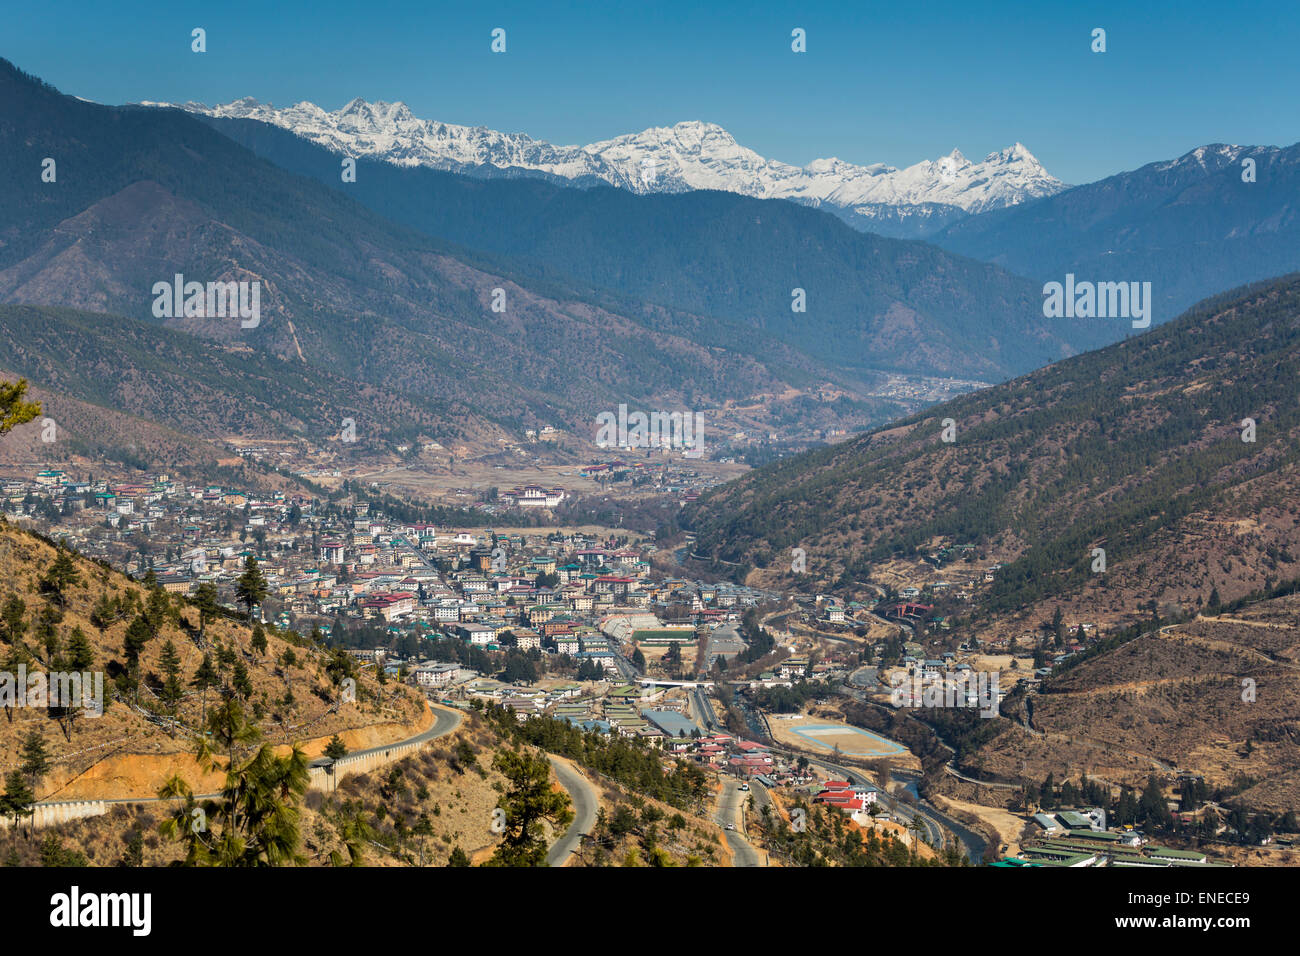 Overall view of Thimphu, Bhutan, Asia, from Buddha Dordenma, with mountains - Stock Image